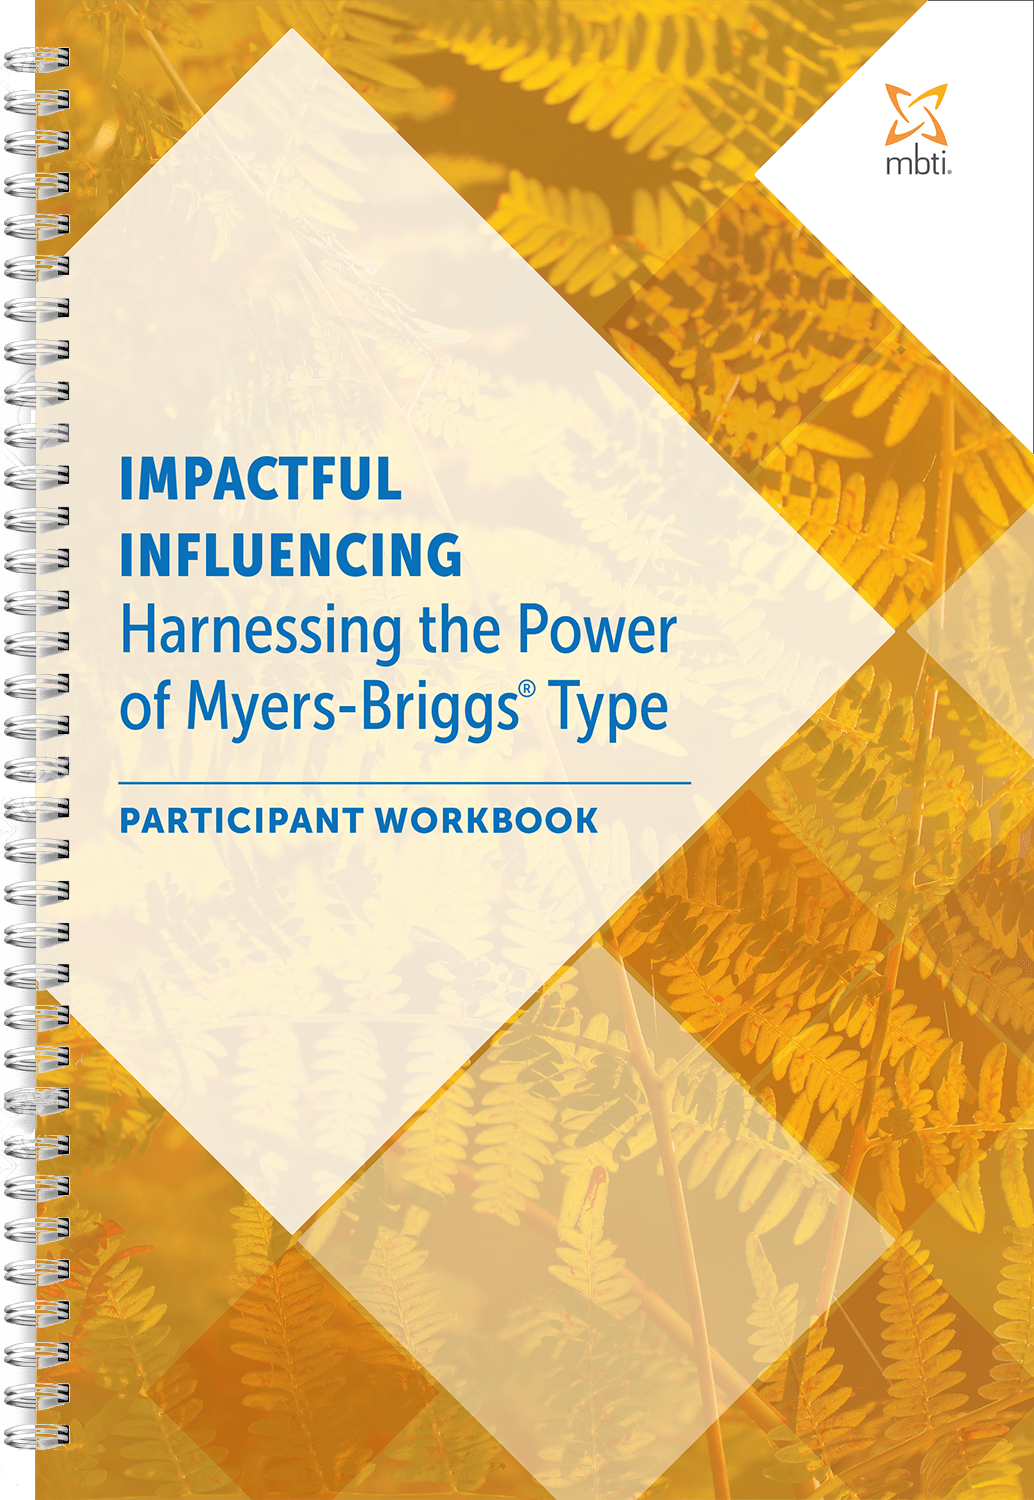 Impactful Influencing Participant Workbook - 10 pack